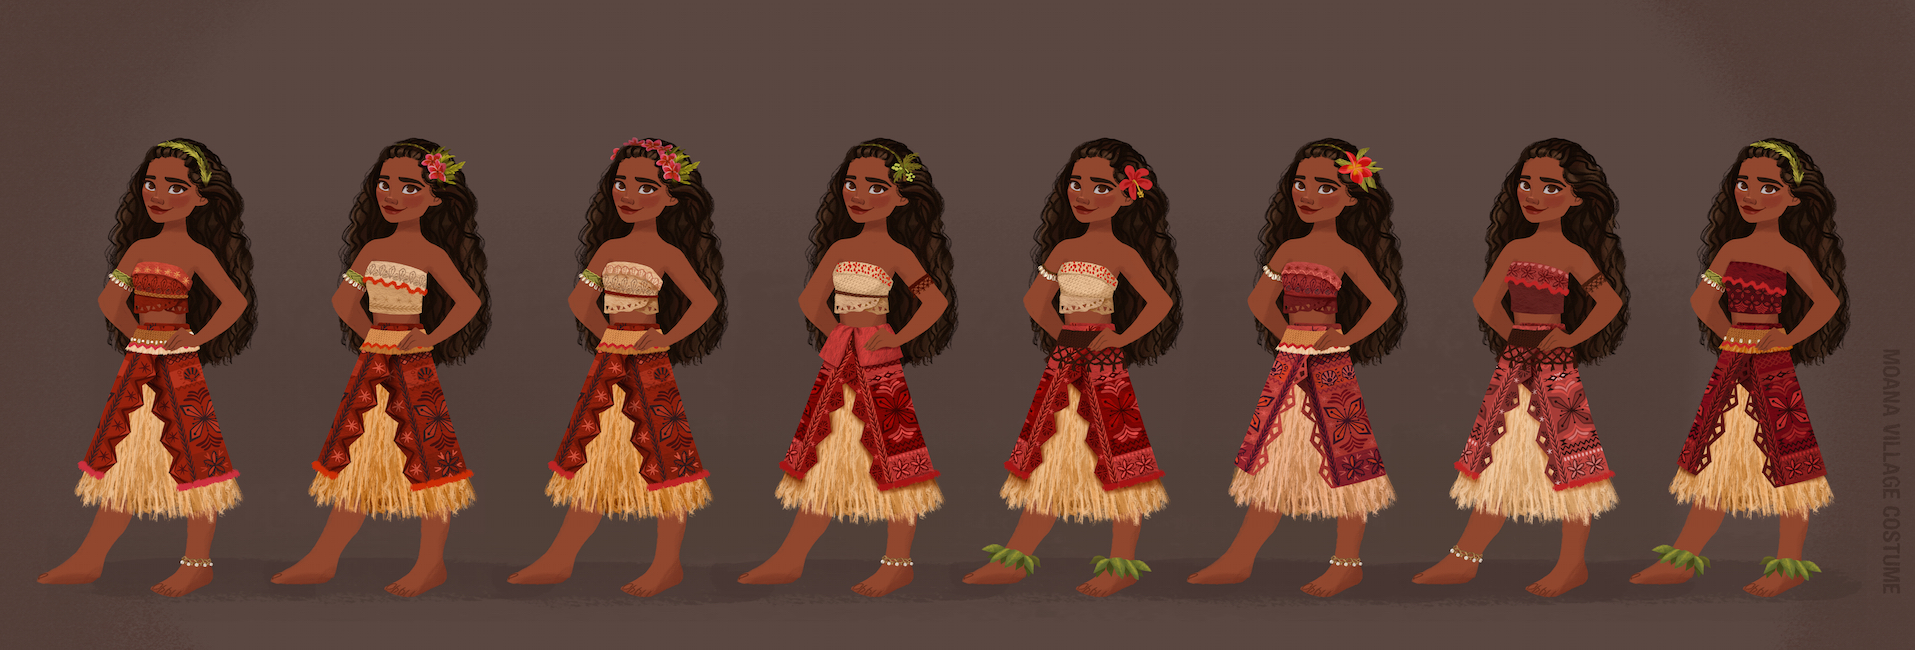 MOANA village costume designs. Artist: Neysa Bové, Visual Development Artist.